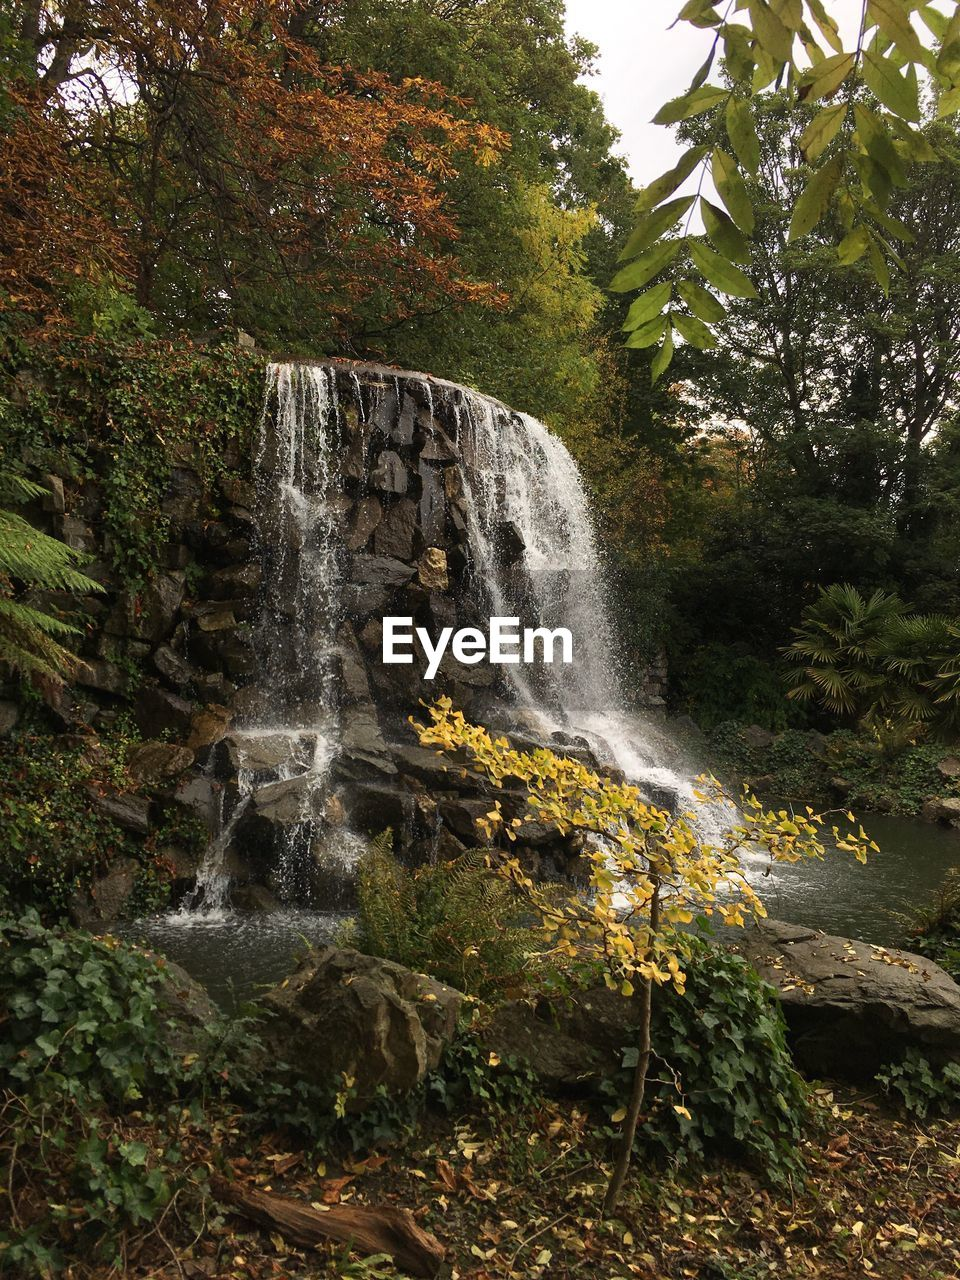 tree, waterfall, plant, water, scenics - nature, long exposure, motion, flowing water, beauty in nature, nature, forest, blurred motion, land, rock, no people, day, flowing, growth, environment, outdoors, power in nature, rainforest, falling water, change, running water